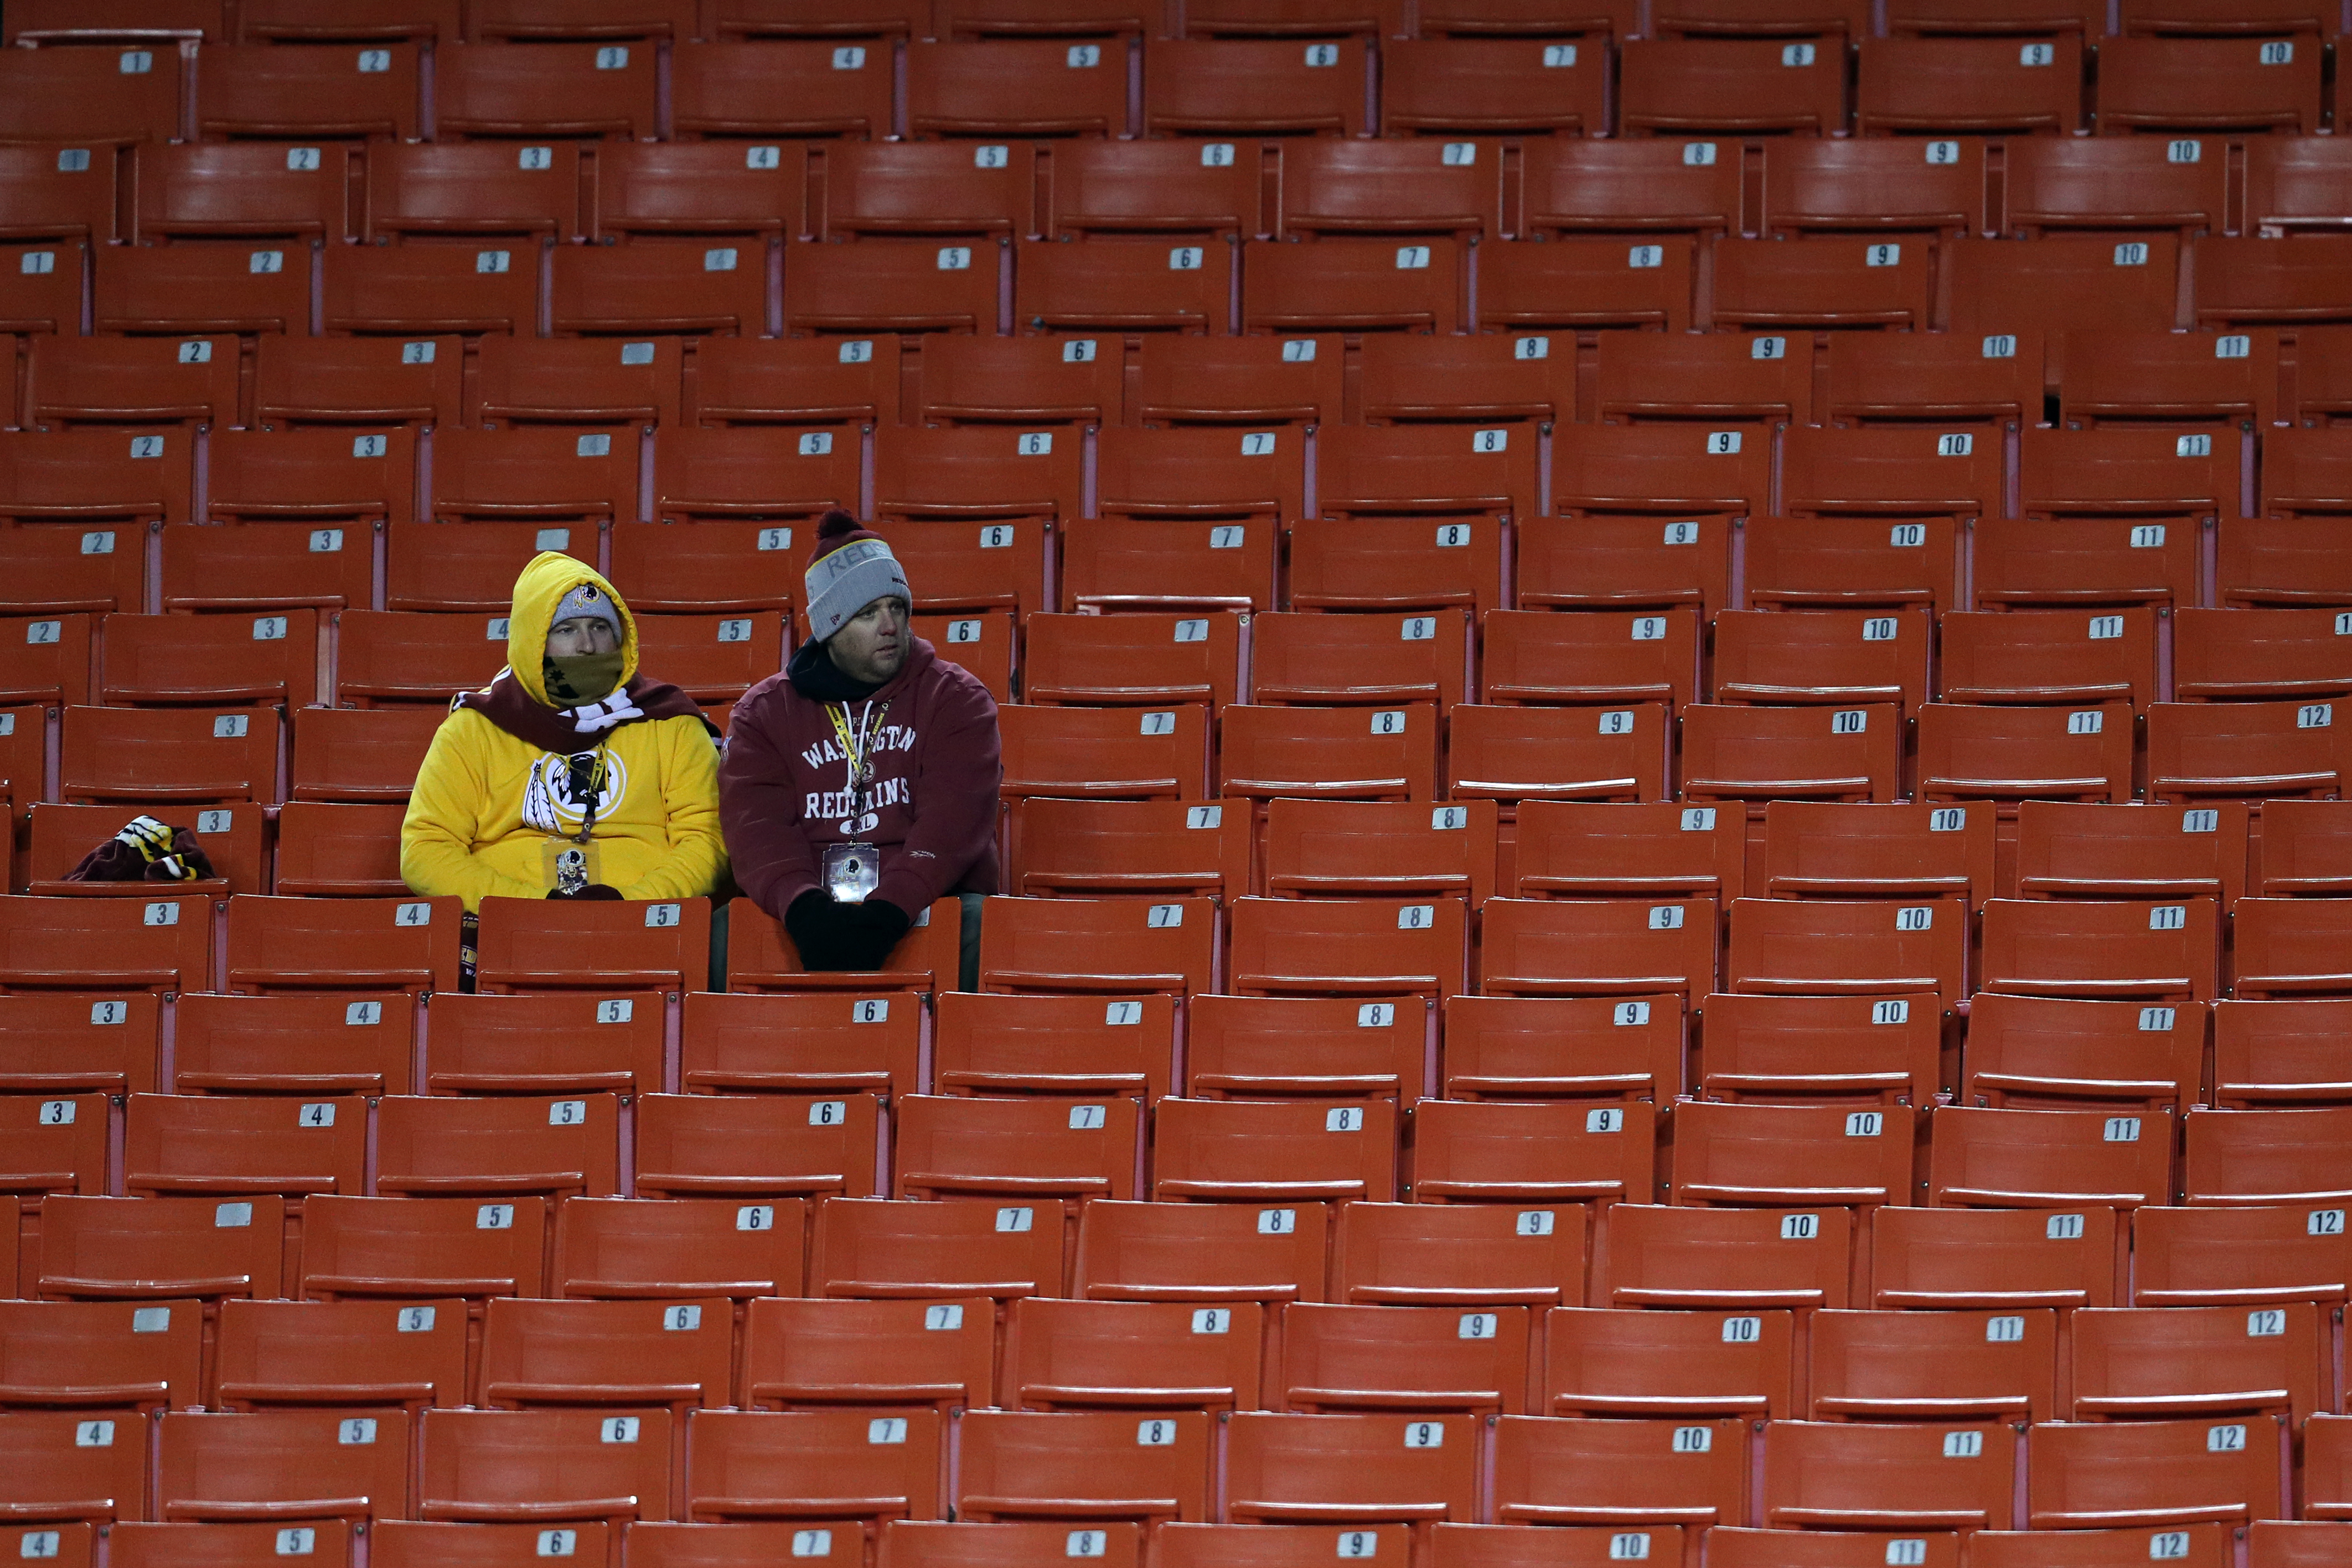 Washington Redskins jersey sales show that the franchise needs a face